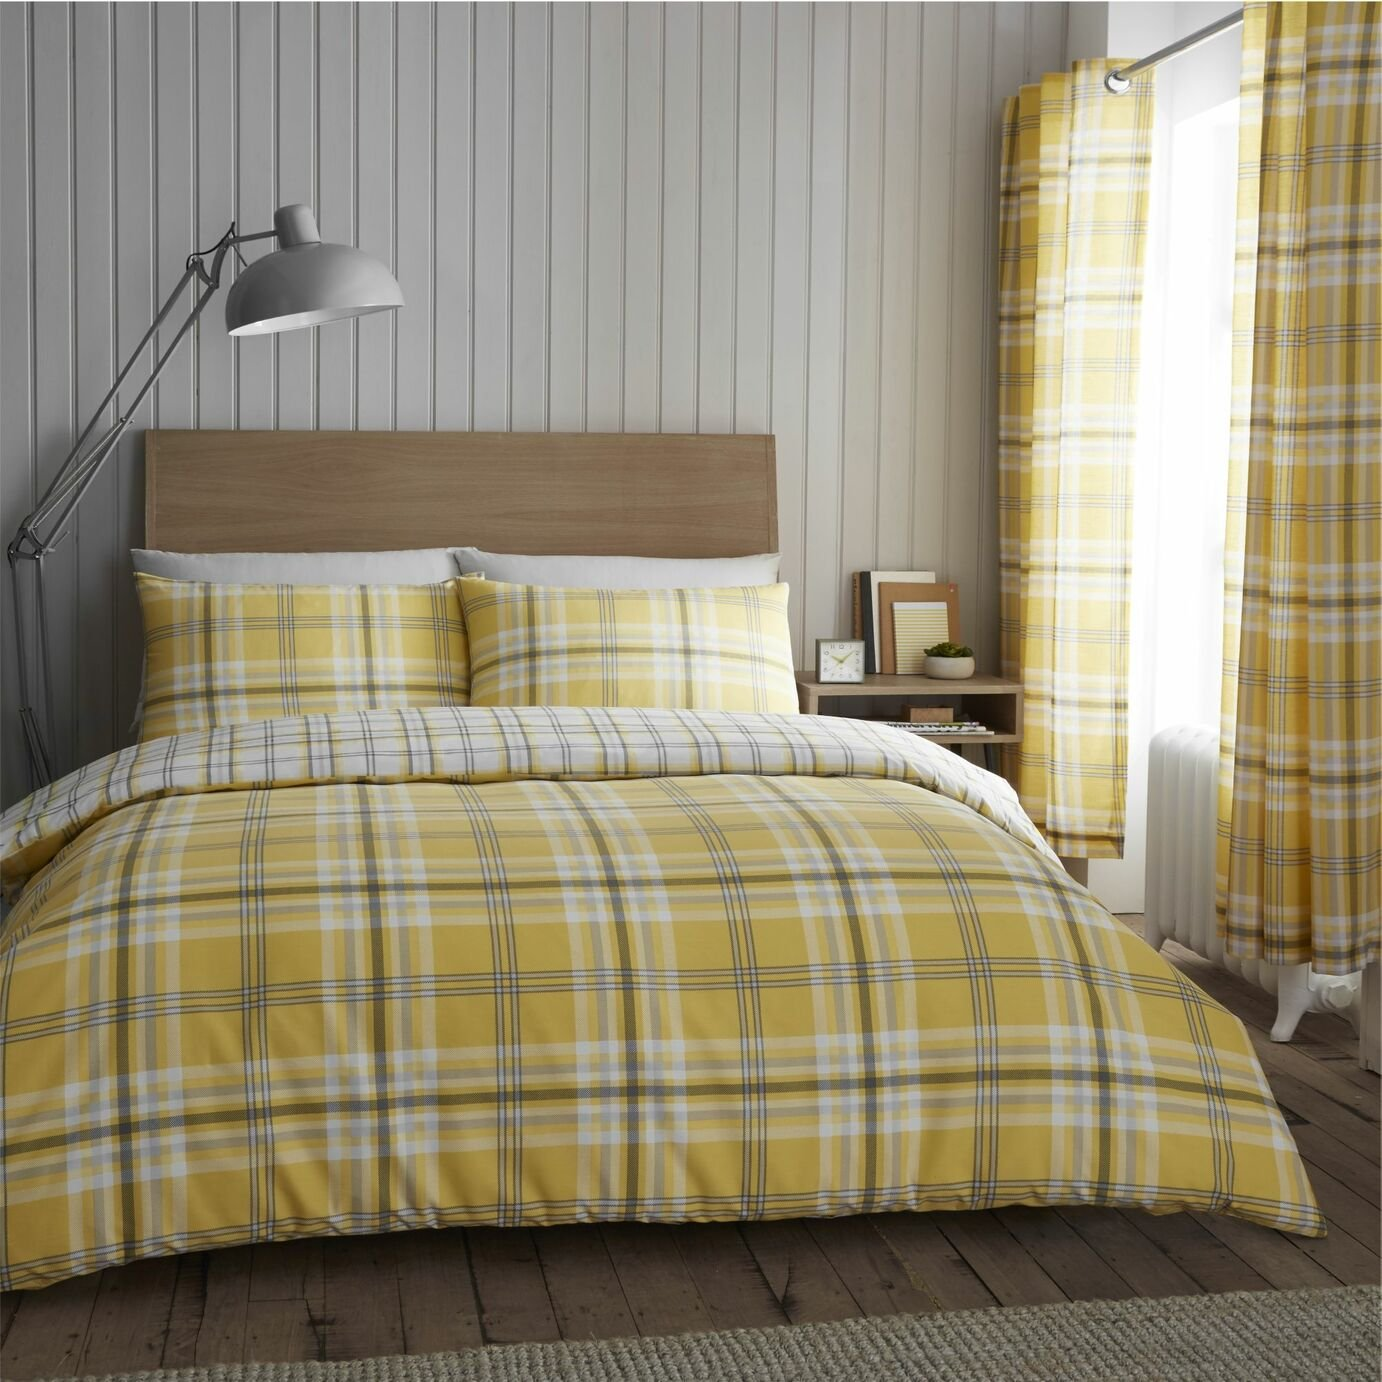 Catherine Lansfield Ochre Kelso Bedding Set - Double